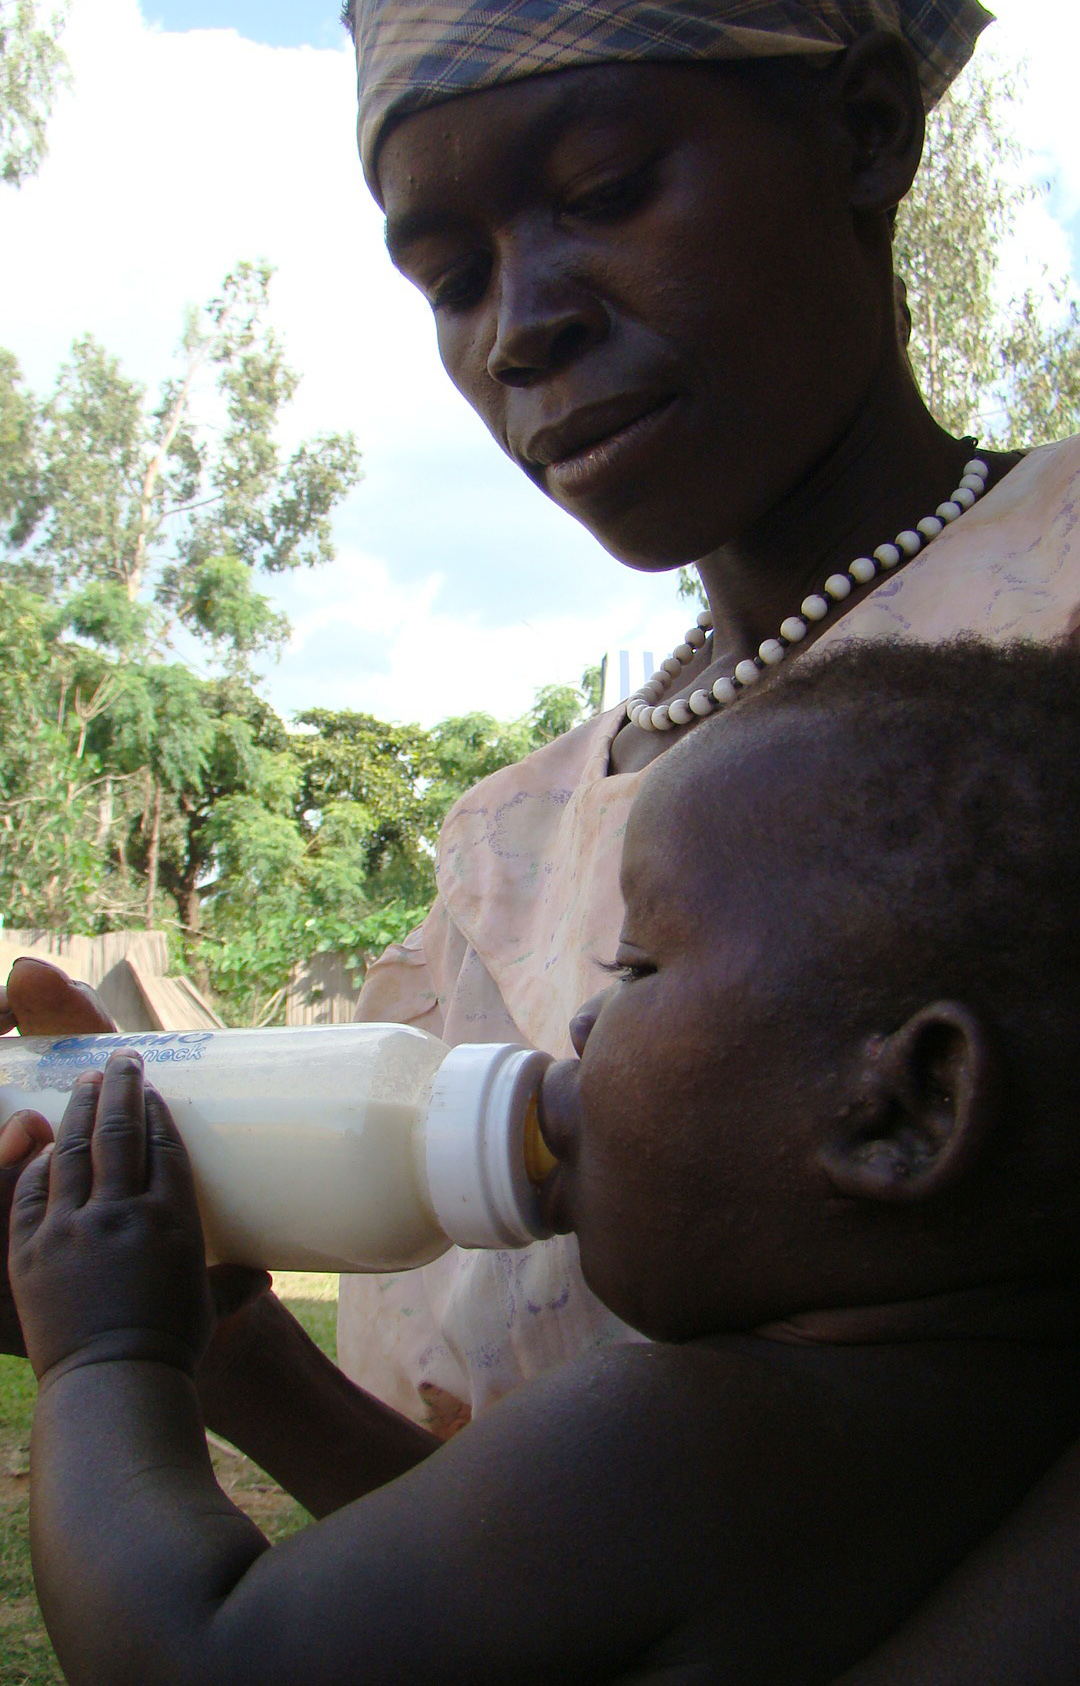 An HIV-positive morther in Gulu, northern Uganda, gives her baby cow's milk as a replacement for breastmilk in an effort to prevent vertical HIV transmission